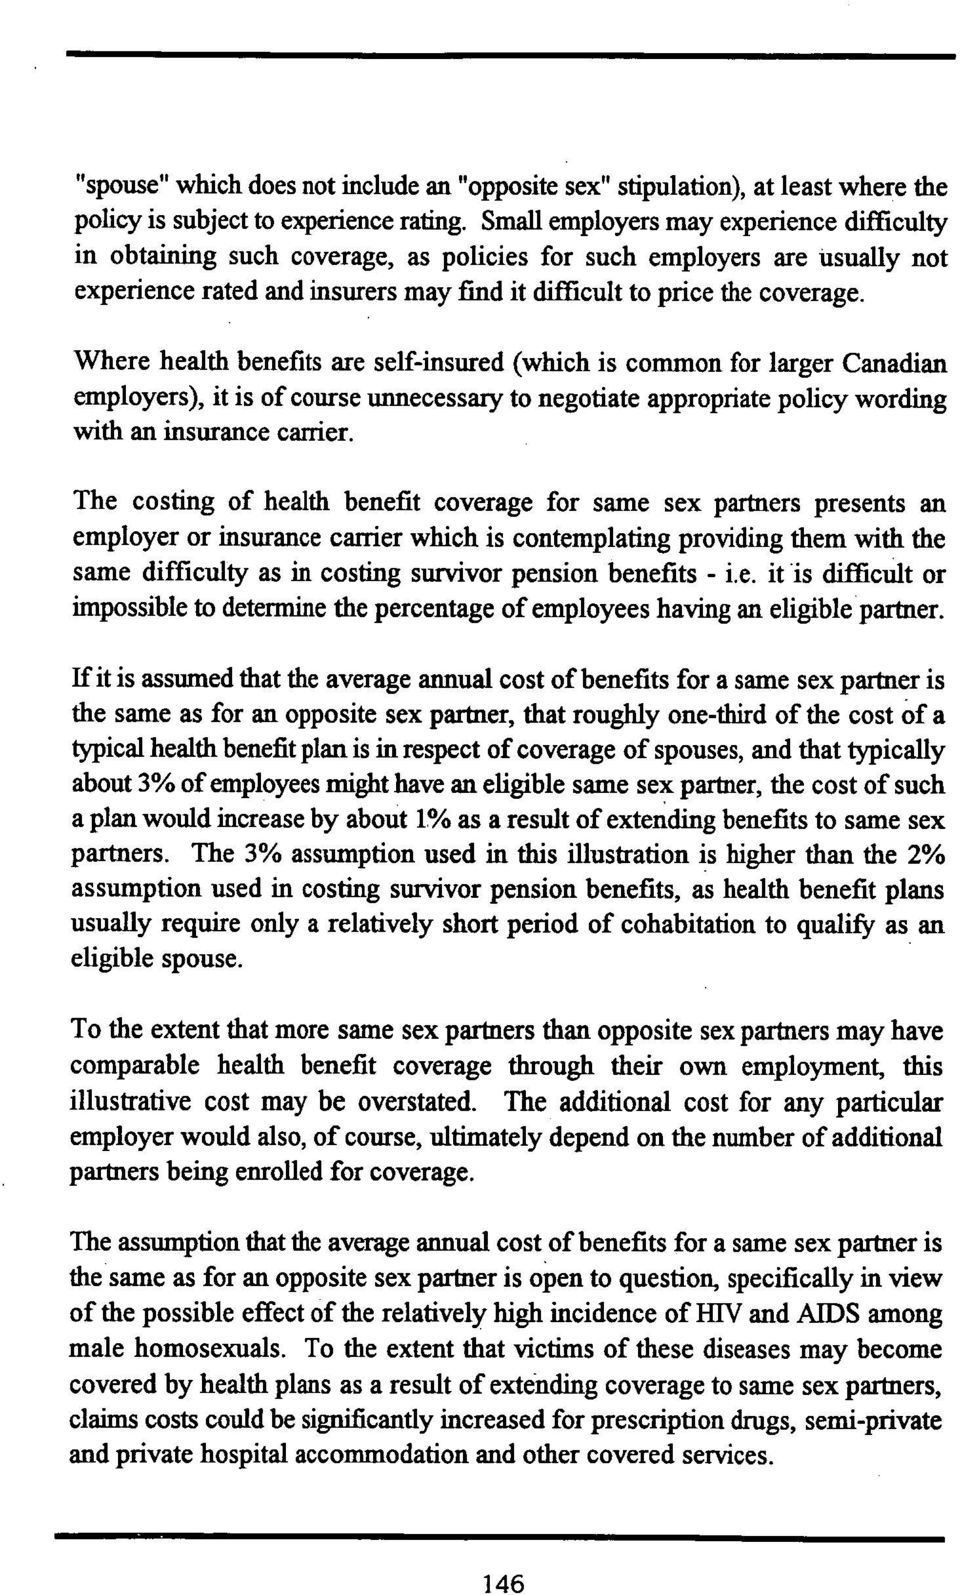 Where health benefits are self-insured (which is common for larger Canadian employers), it is of course unnecessary to negotiate appropriate policy wording with an insurance canier.